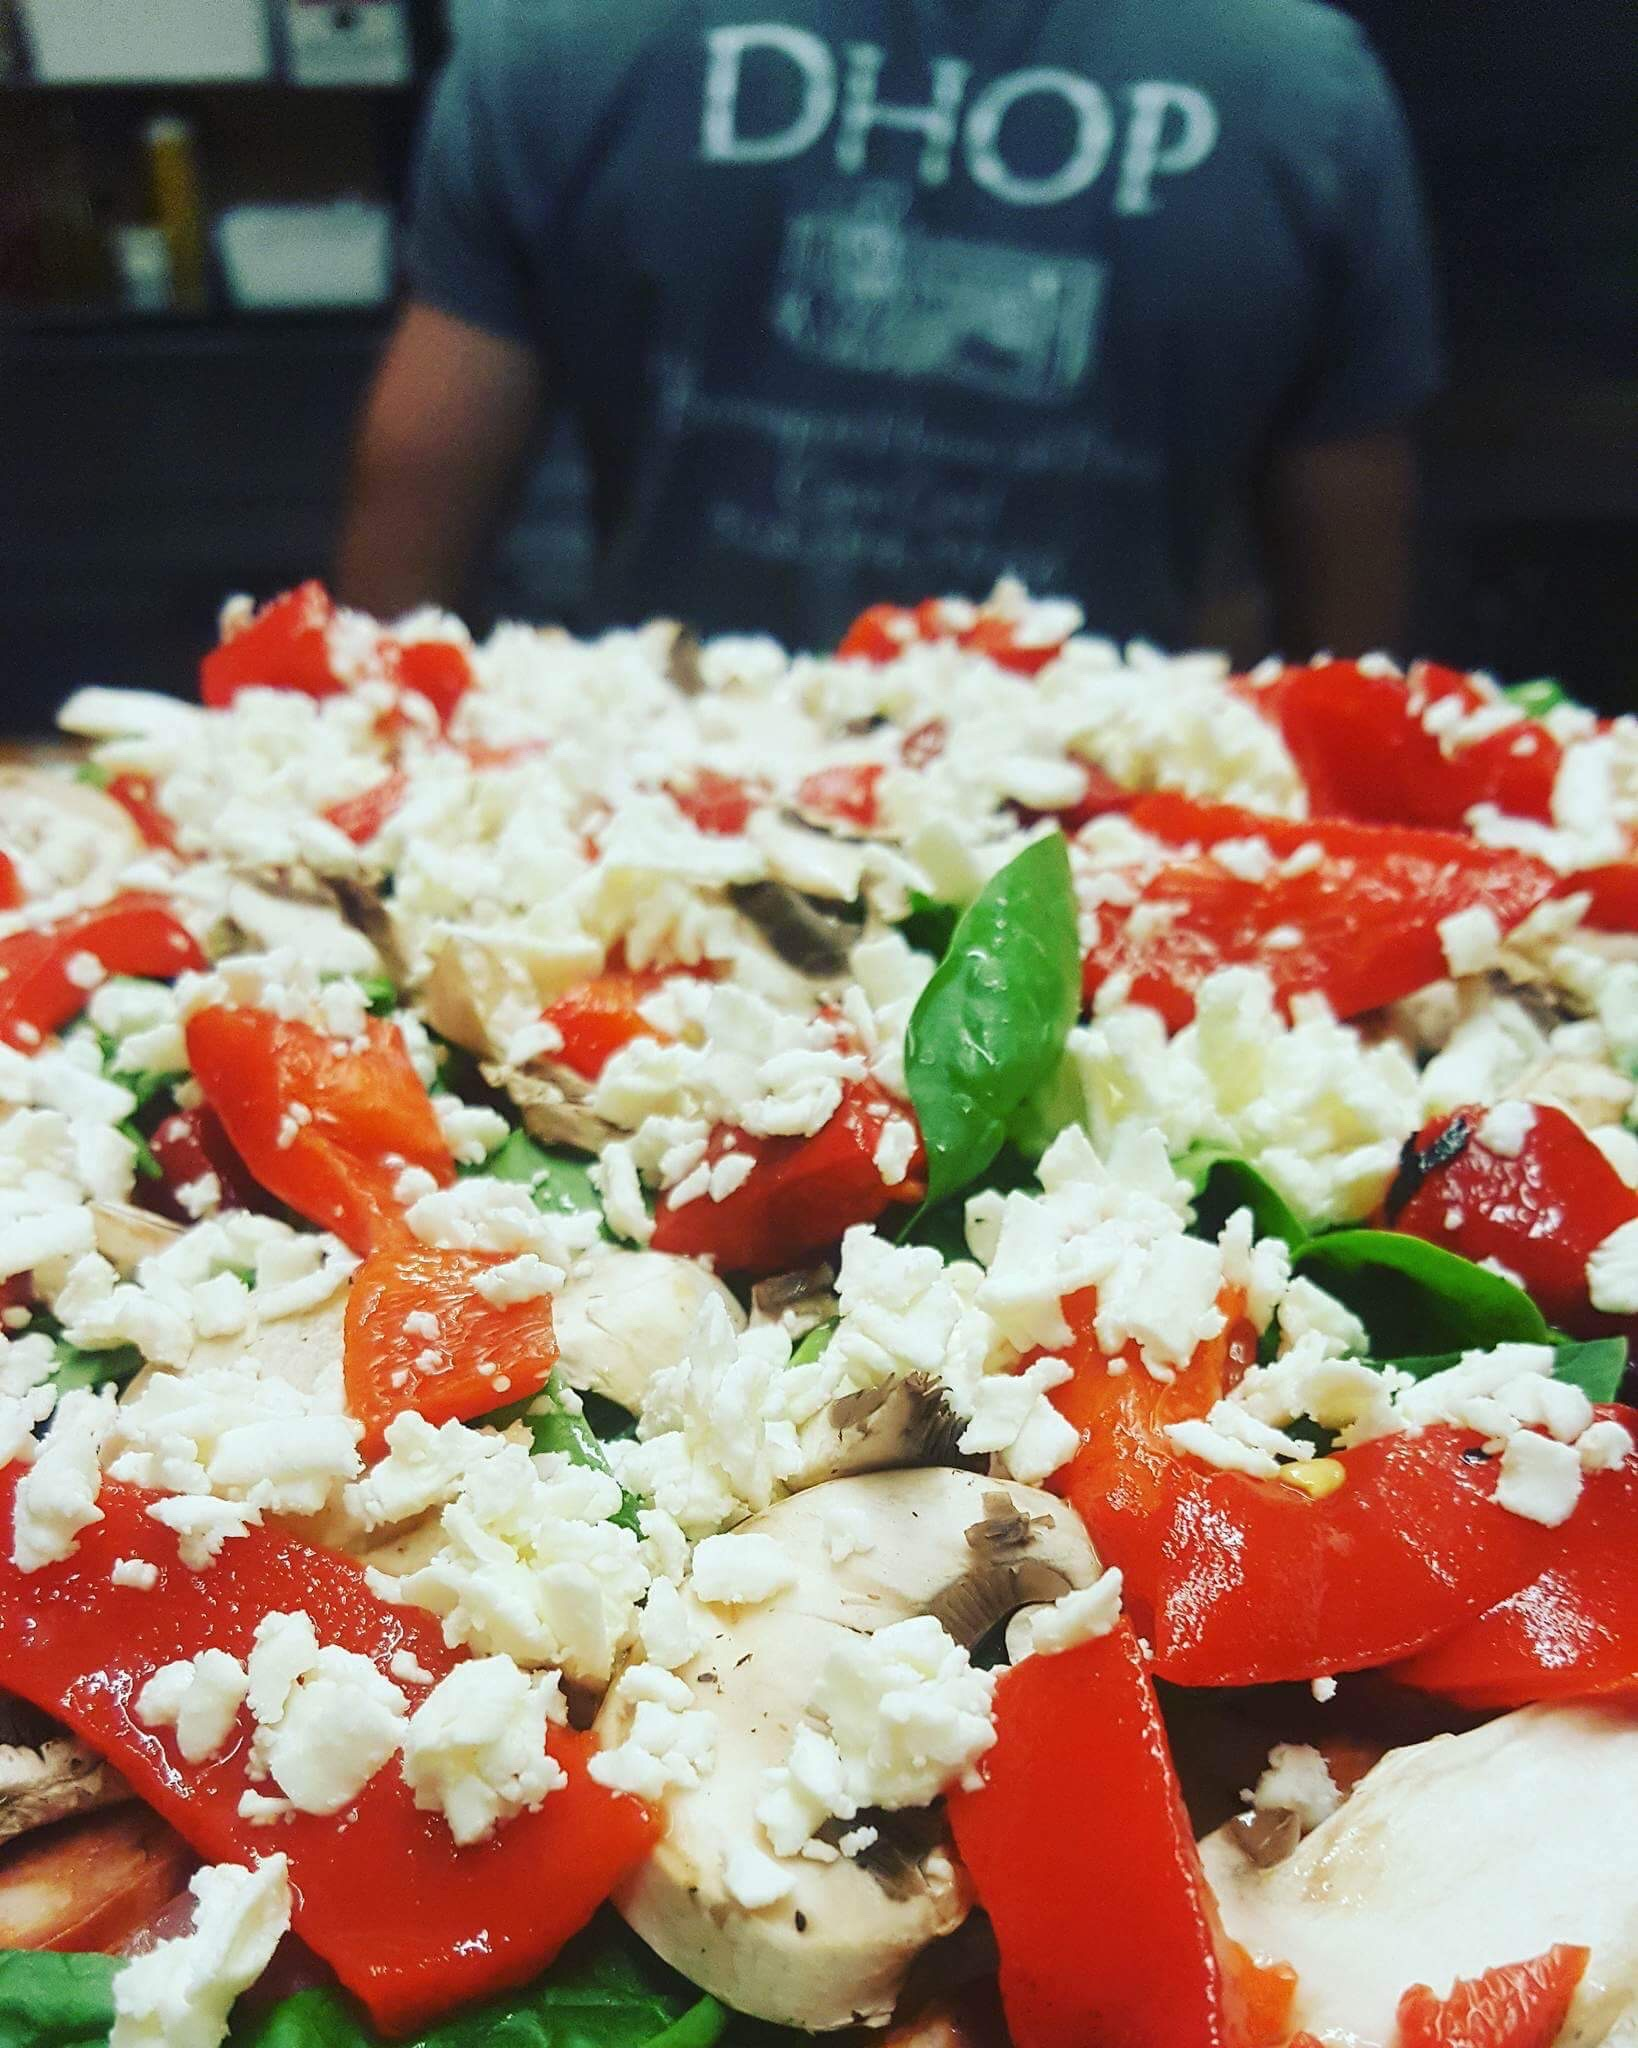 large pizza topped with feta cheese, tomatoes, basil leaves and mushrooms